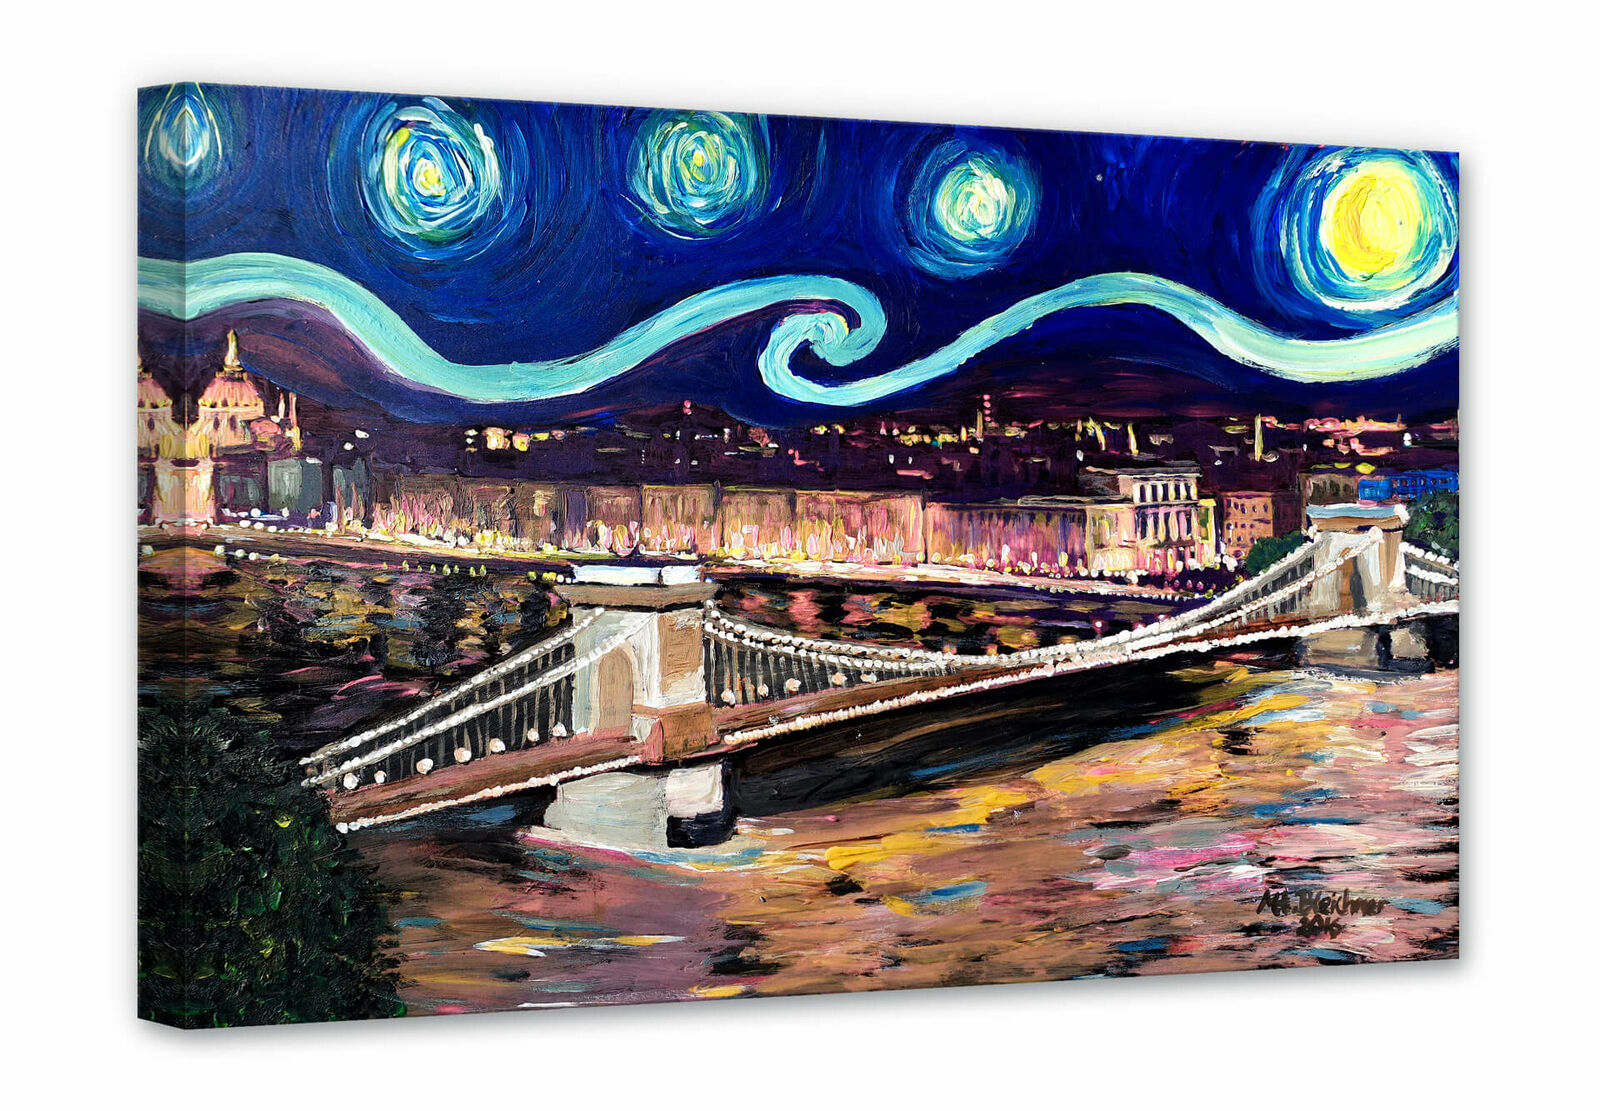 Leinwandbild Bleichner - Starry Night in Budapest WANDBILD KEILRAHMEN CANVAS